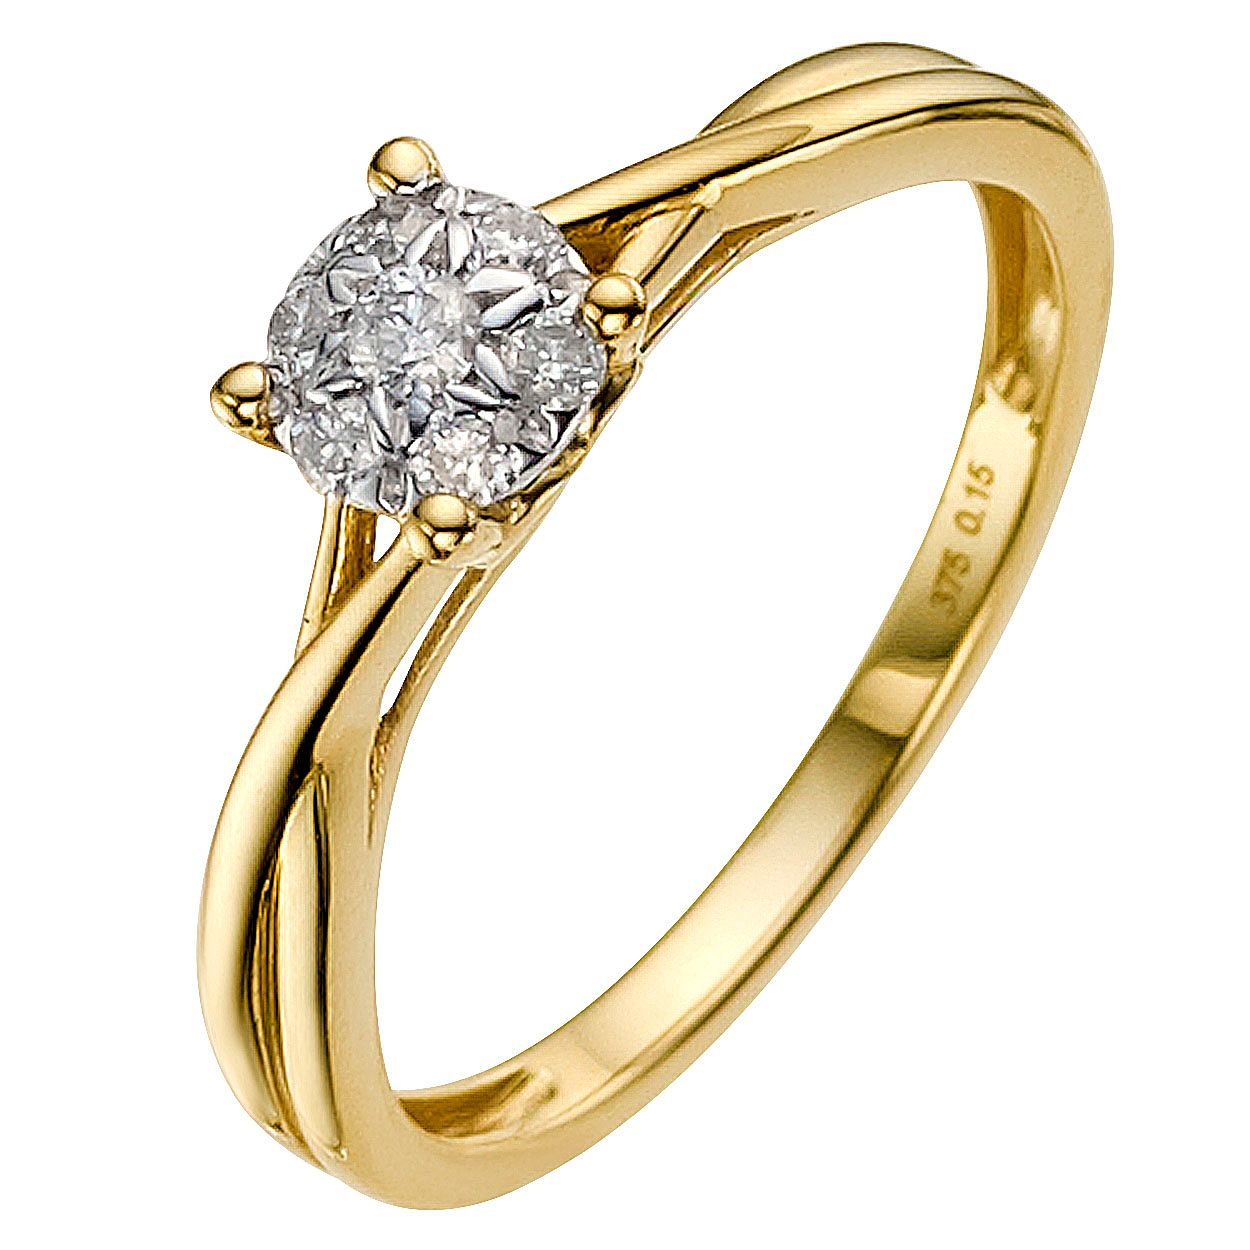 ring fancy diamond rings engagement orospot yellow canary band wedding com